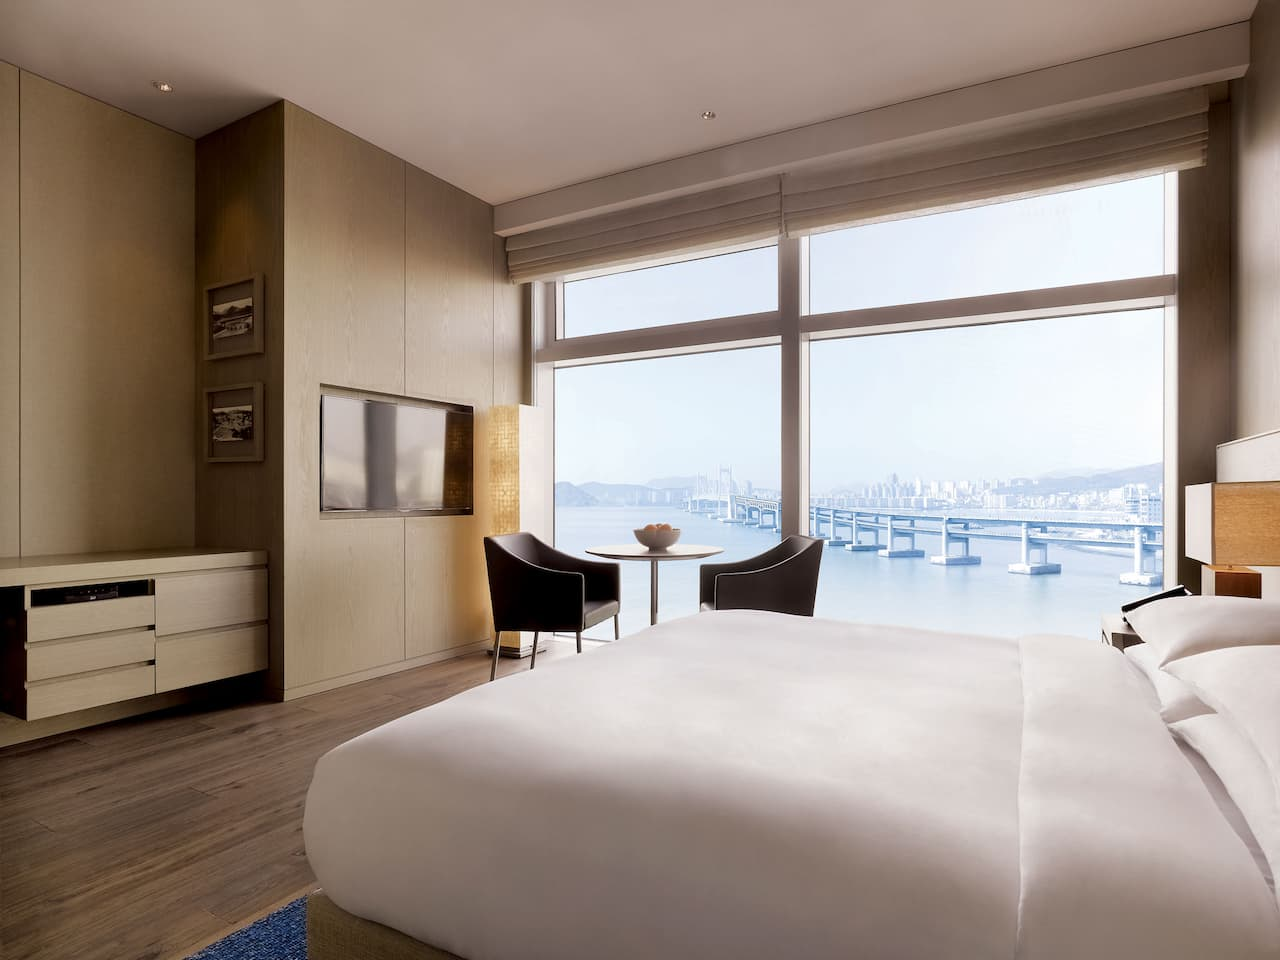 Busan Hotel King Bed with Ocean View